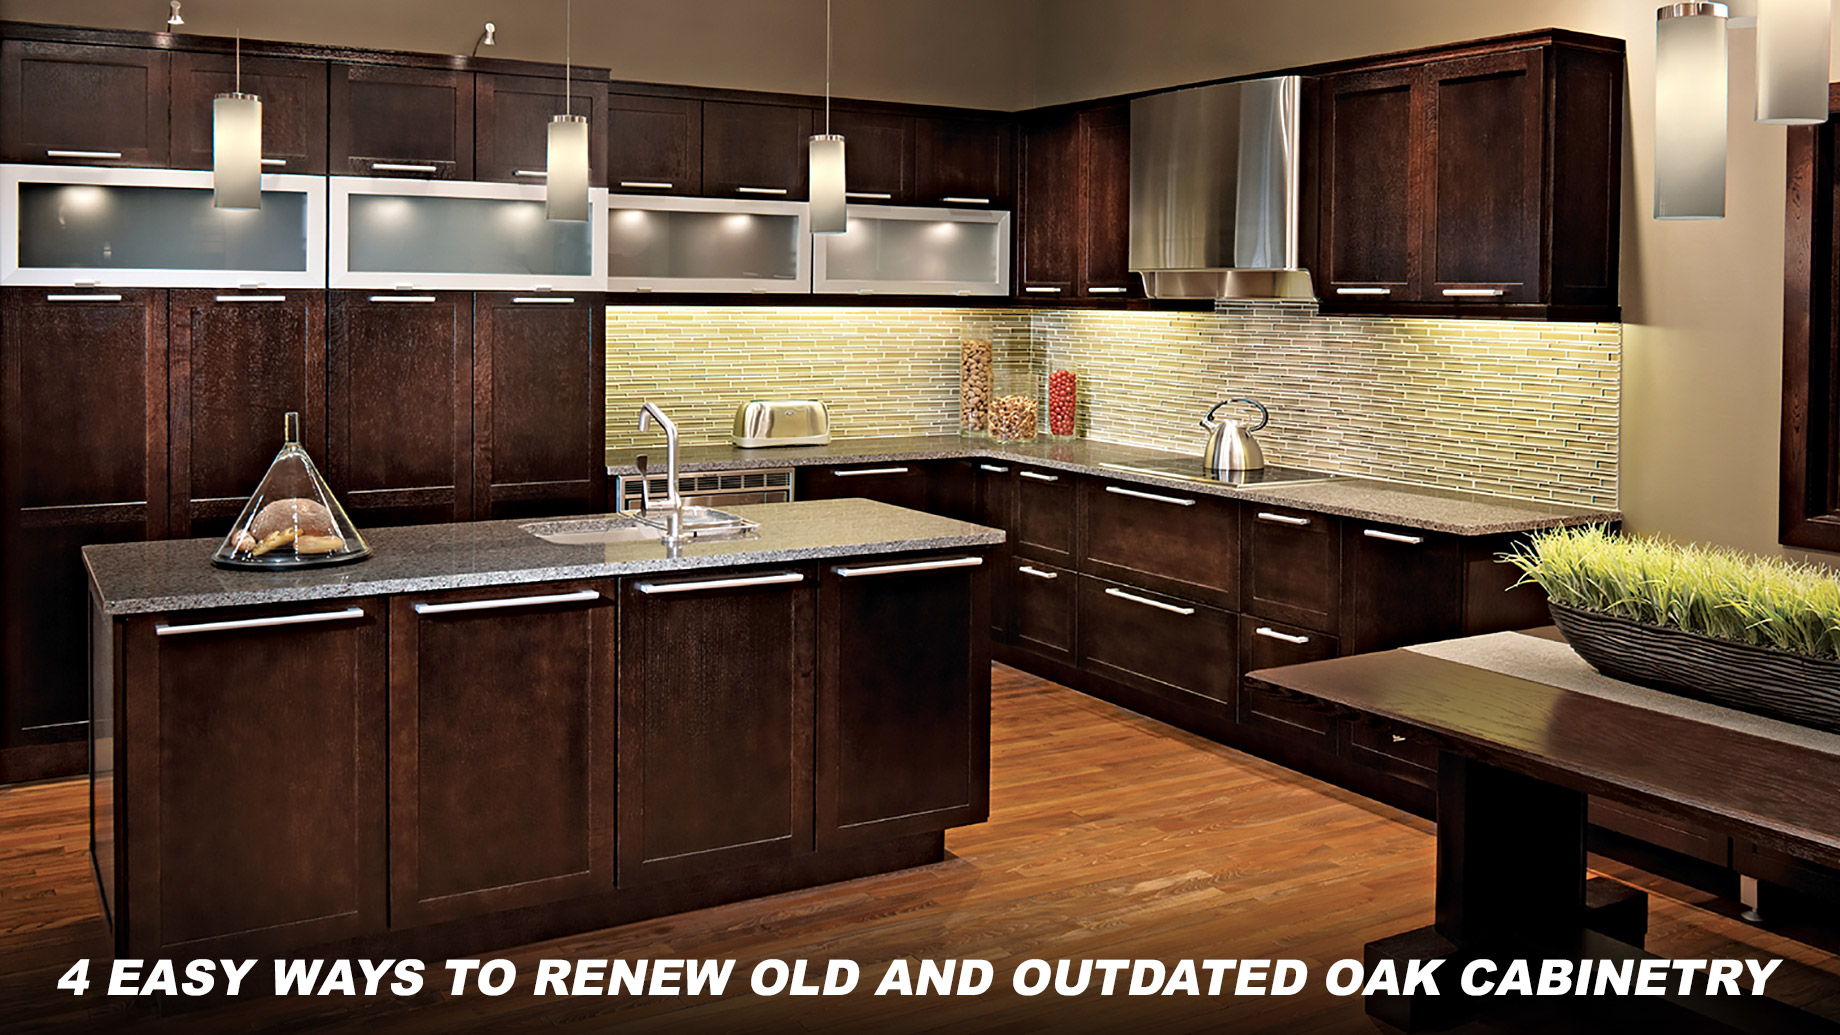 4 Easy Ways To Renew Old And Outdated Oak Cabinetry The Pinnacle List